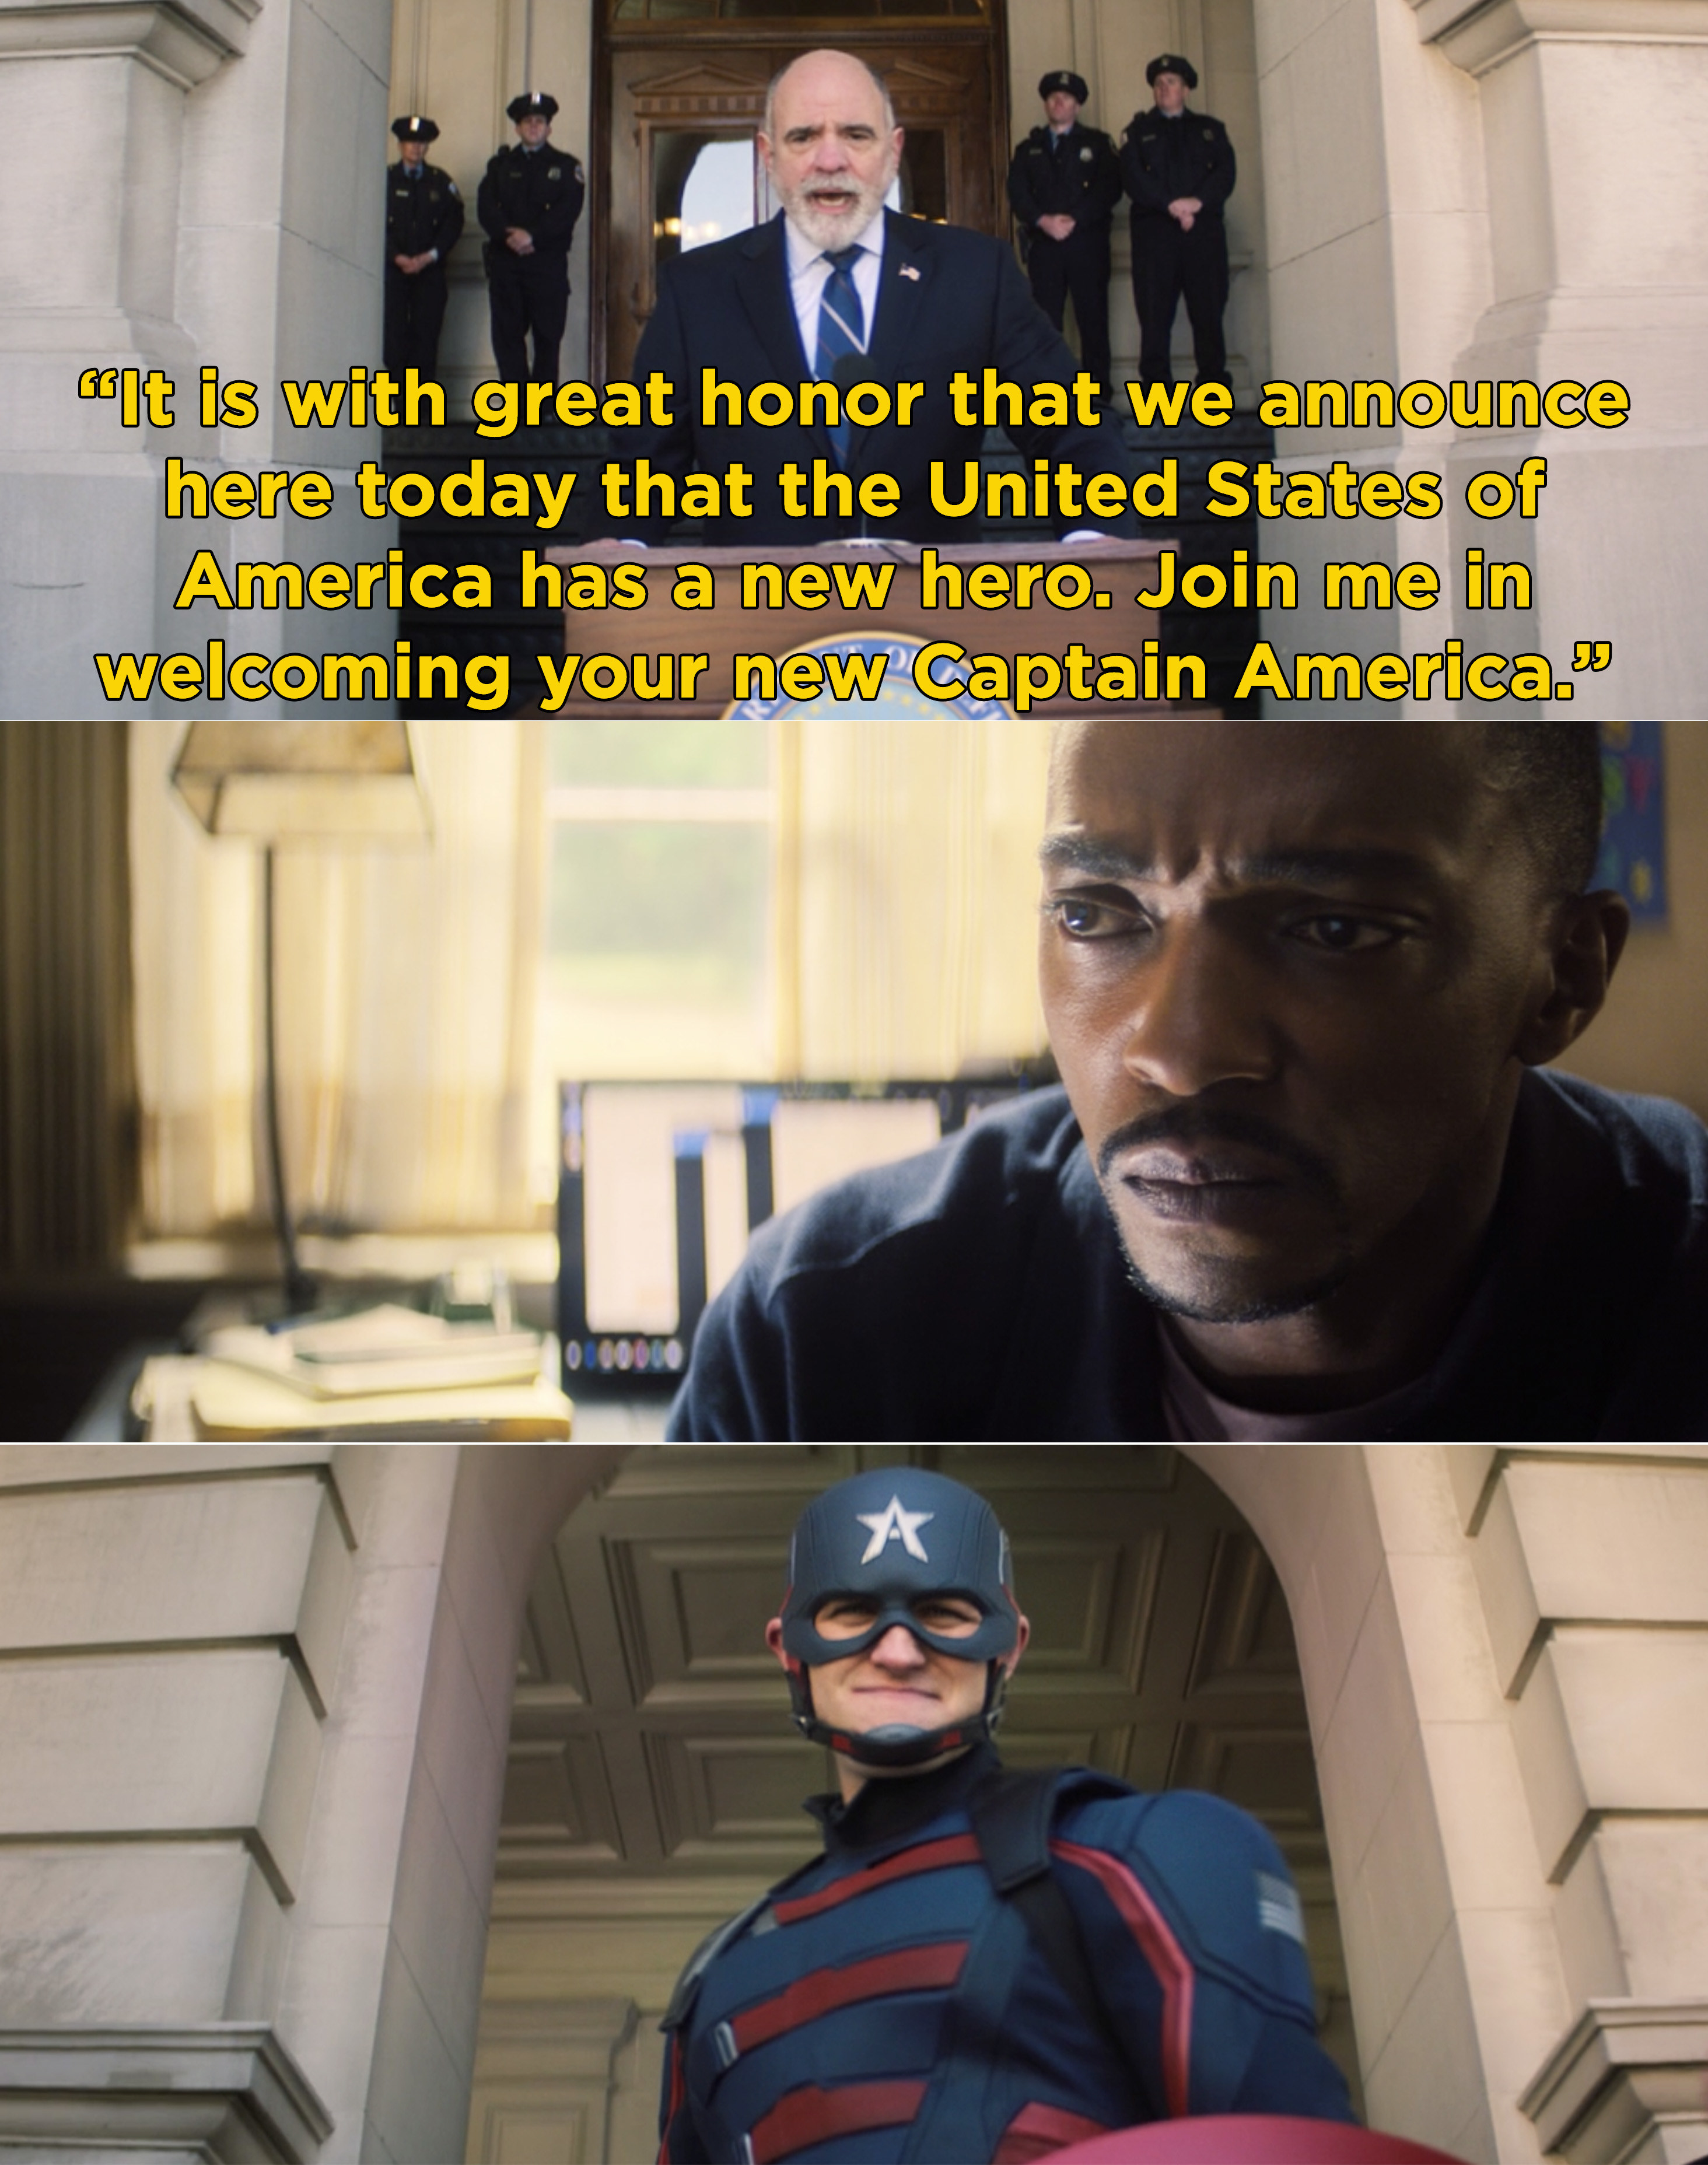 A government official introducing the new Captain America and Sam watching it on TV